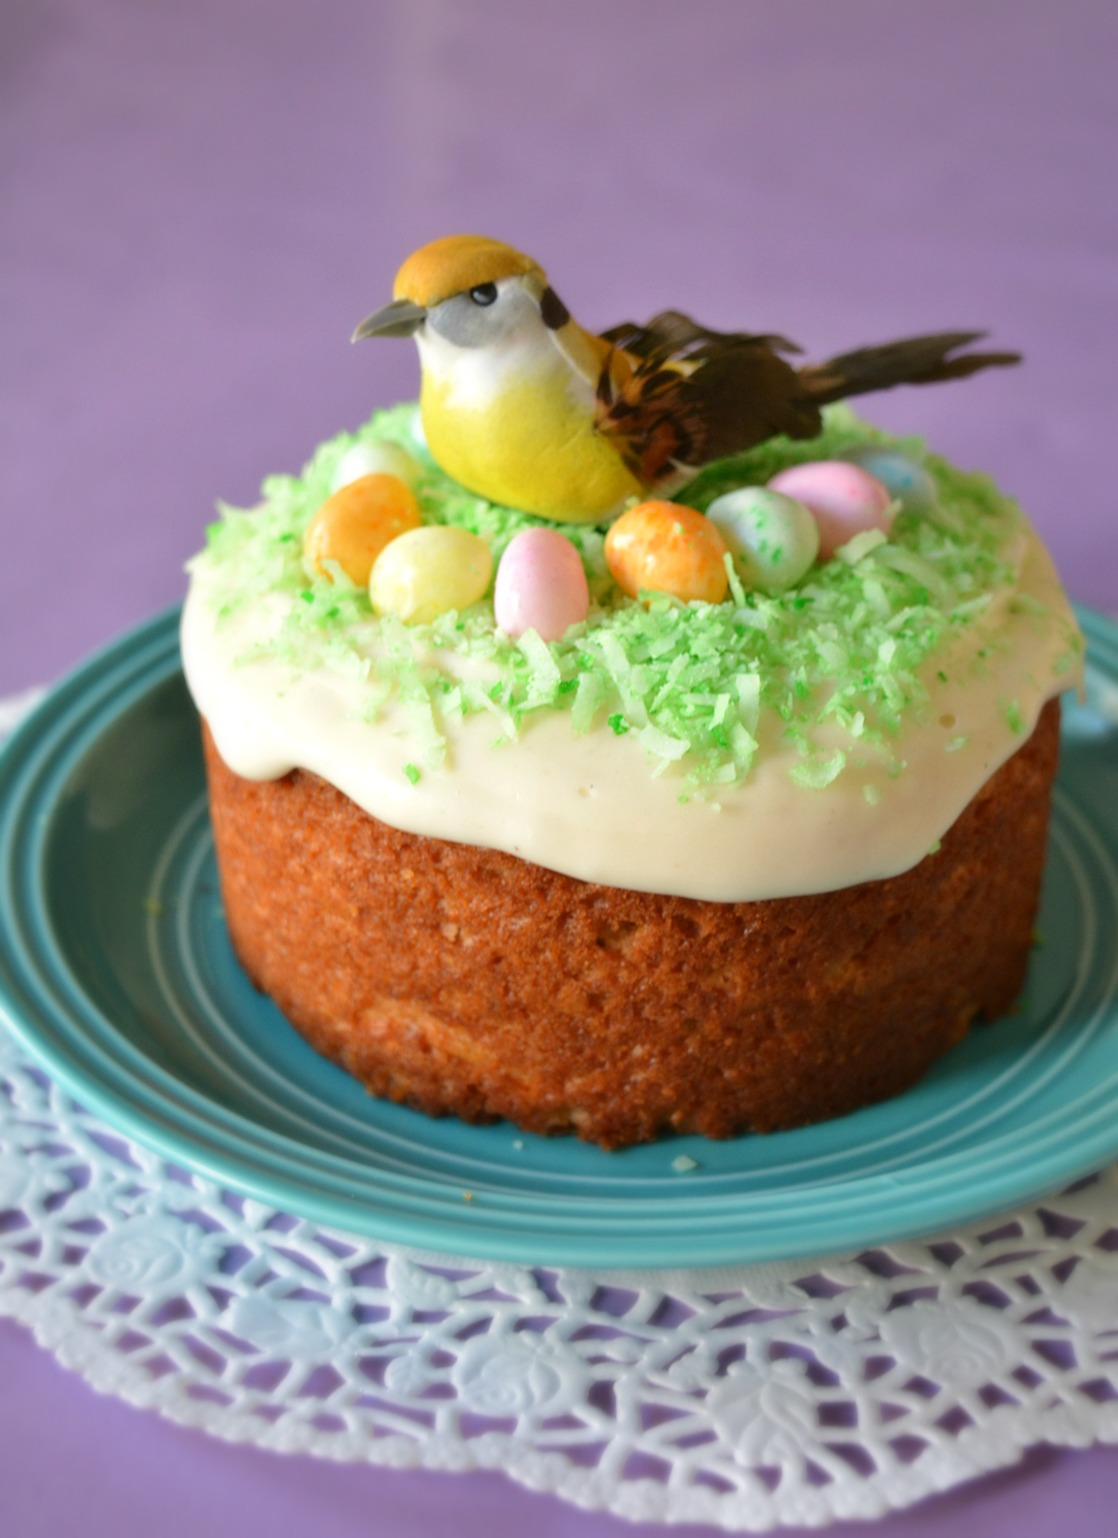 Easter Bird's Nest Cake - Eggless Carrot cake recipe